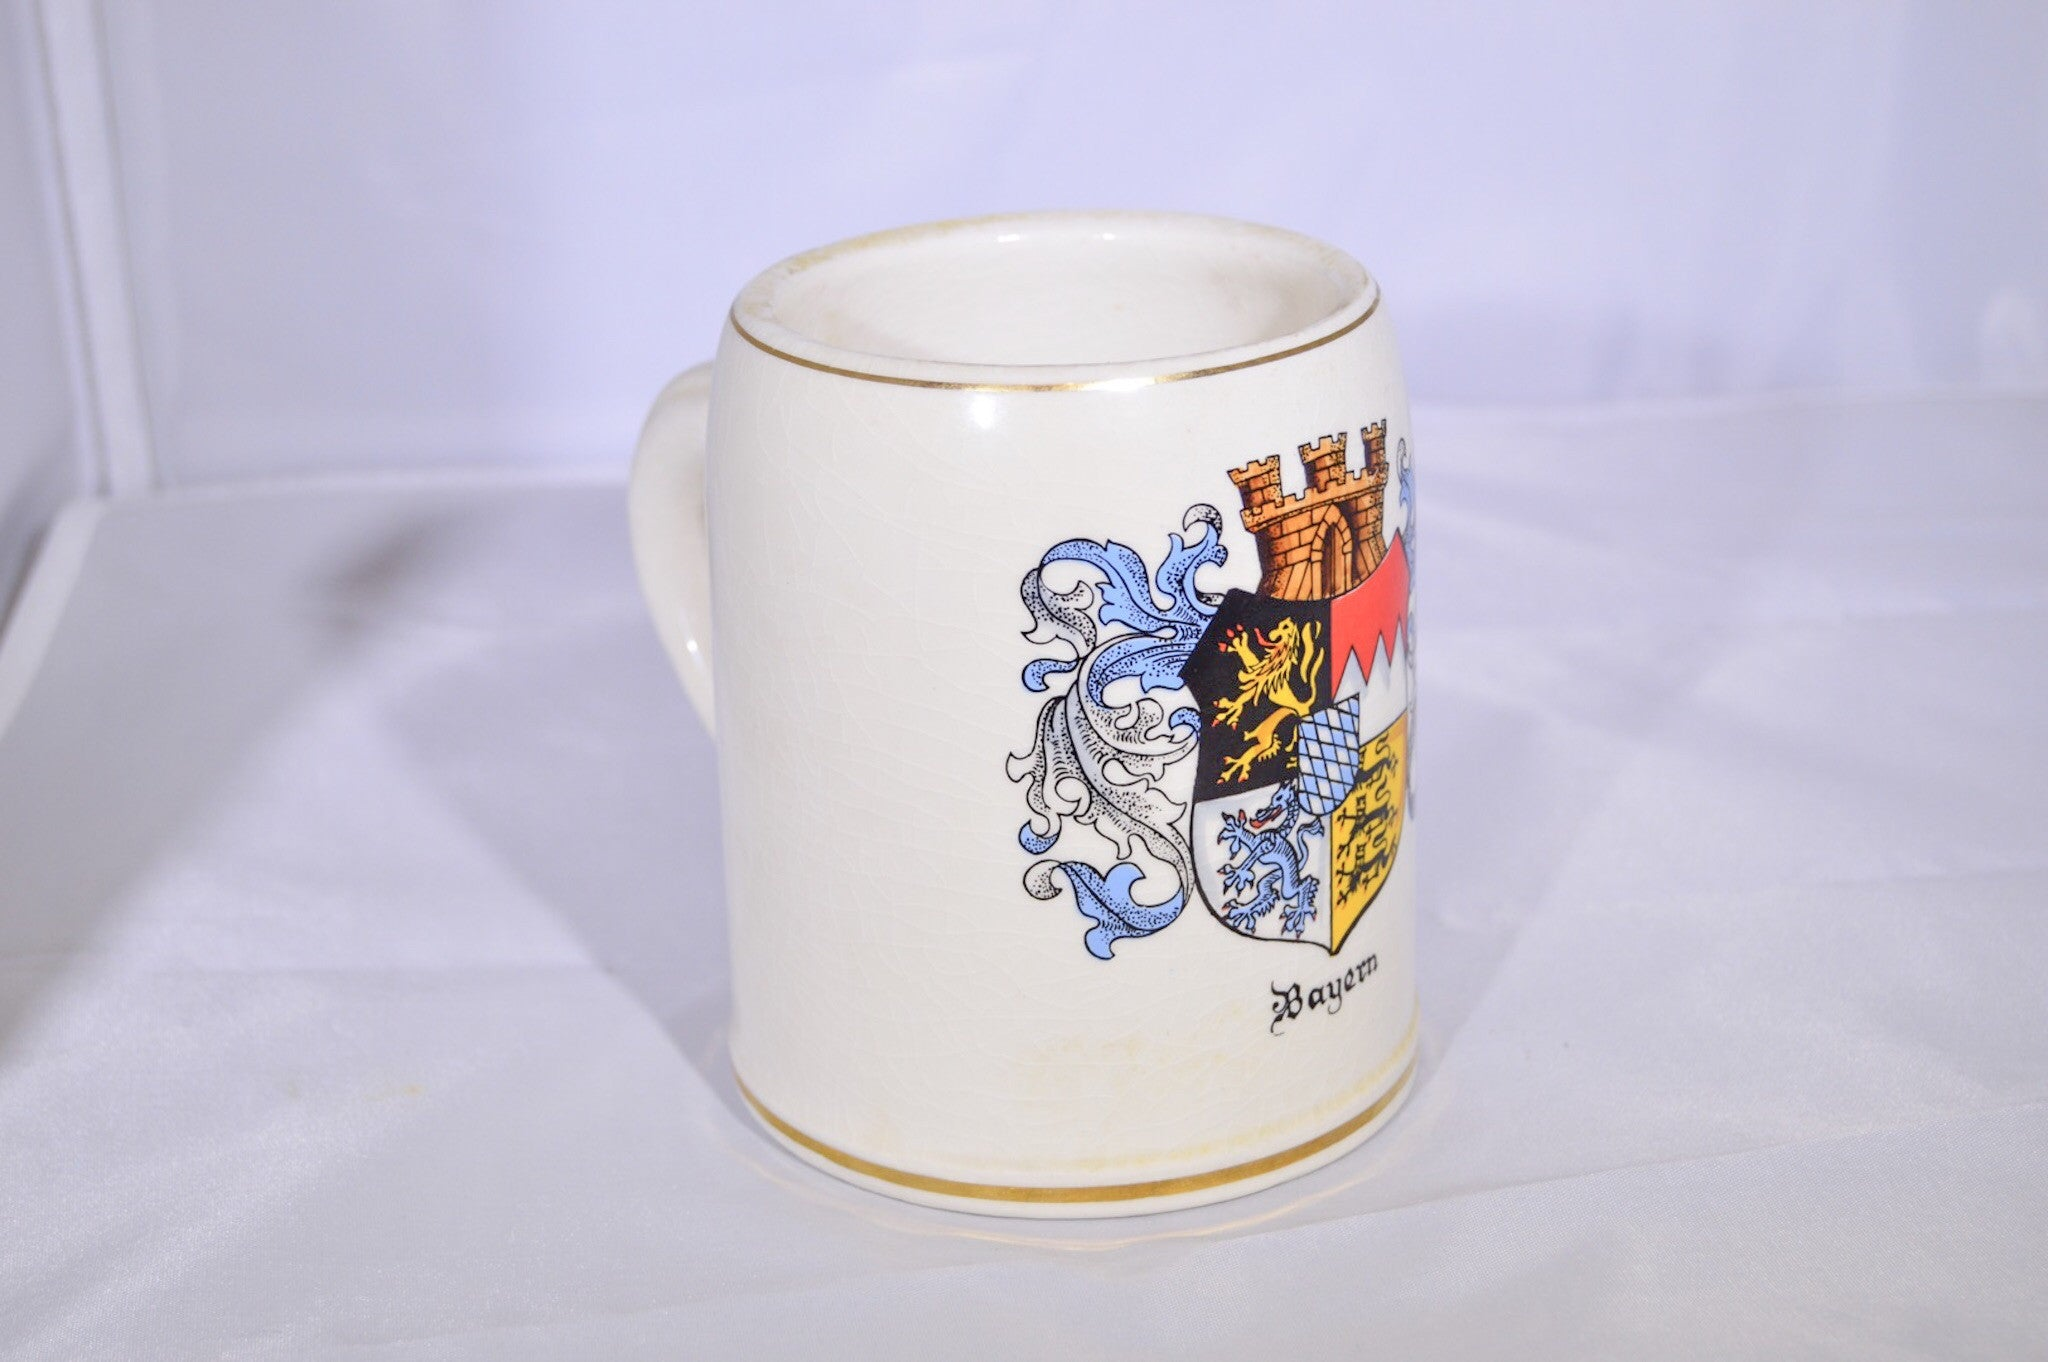 Bayern Hand Painted Beer Stein Mug (Made in Germany)